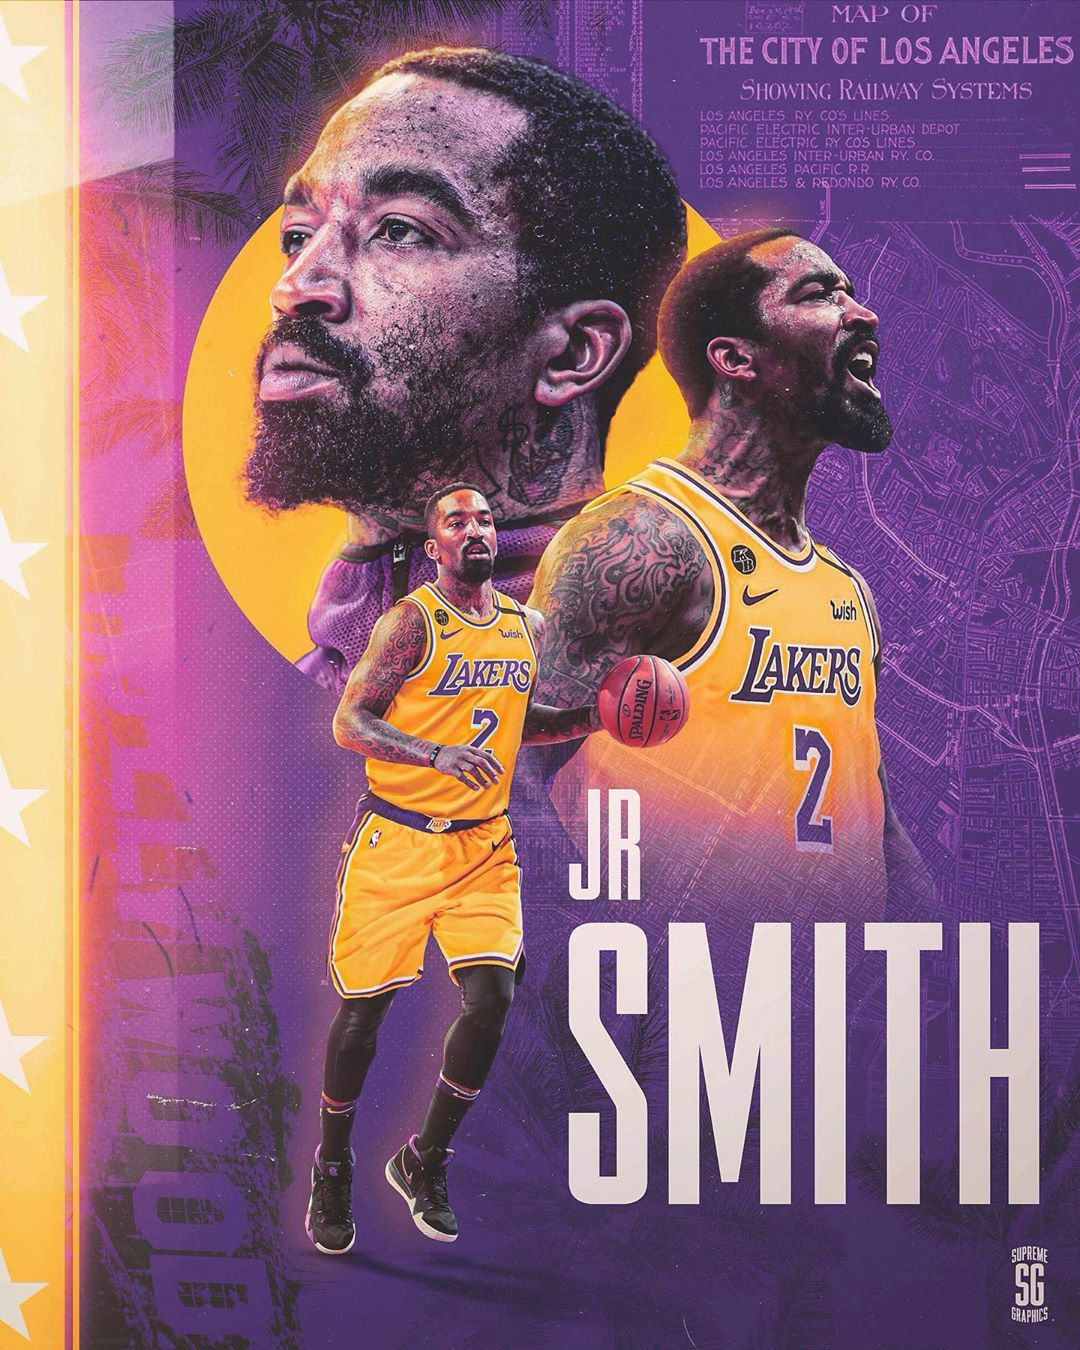 Sports Designs On Instagram Do The Lakers Sign Jr Free Agent Guard Jr Smith Has Emerged As A Leading Cand In 2020 Lakers Sign Lakers Roster Sports Graphic Design